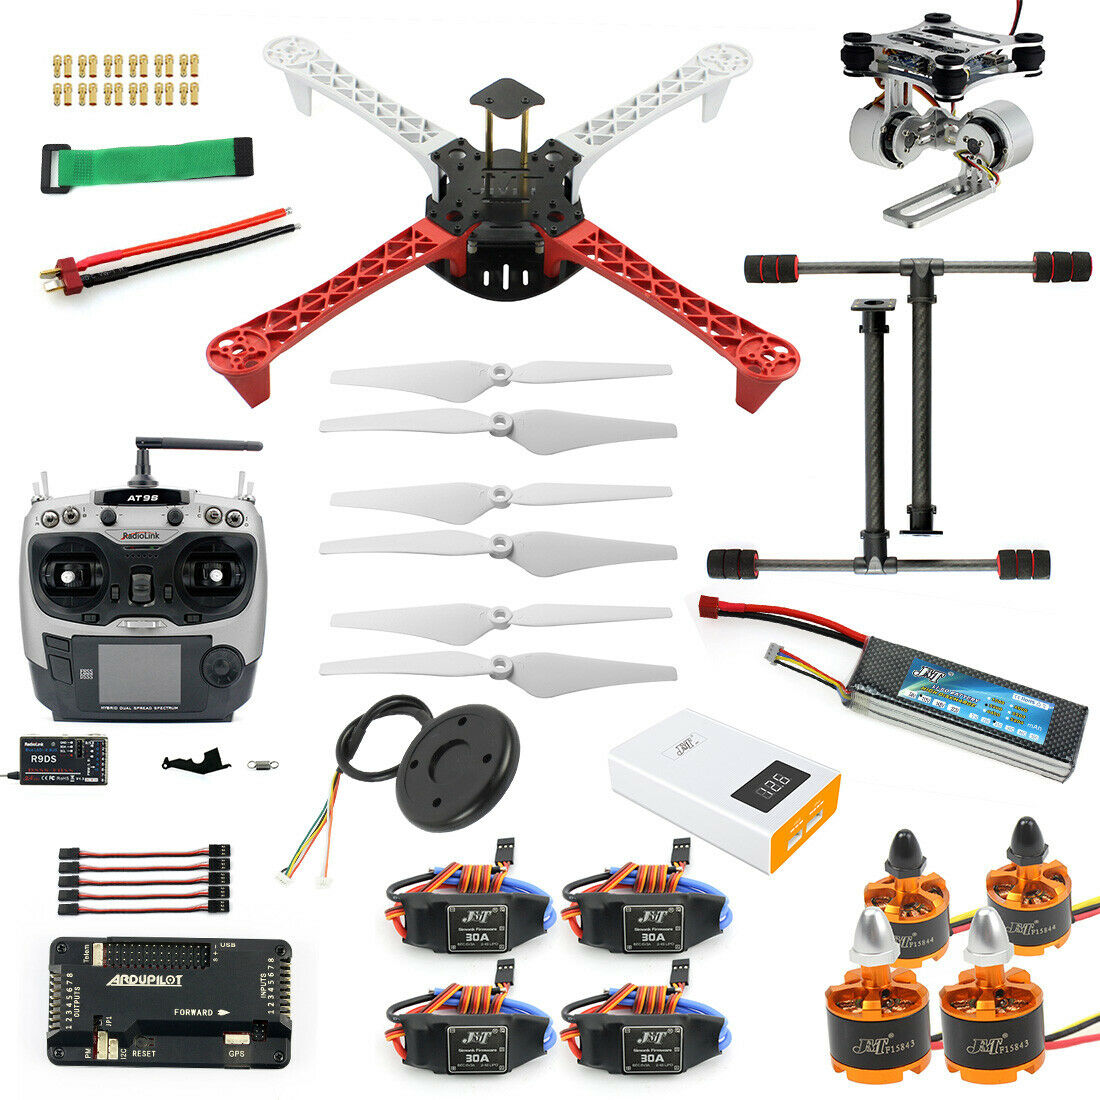 Qwinout Qwinout Qwinout 450mm KIT de Hágalo usted mismo Quadcopter marco CW CCW MOTOR + 9433 hélices  salida